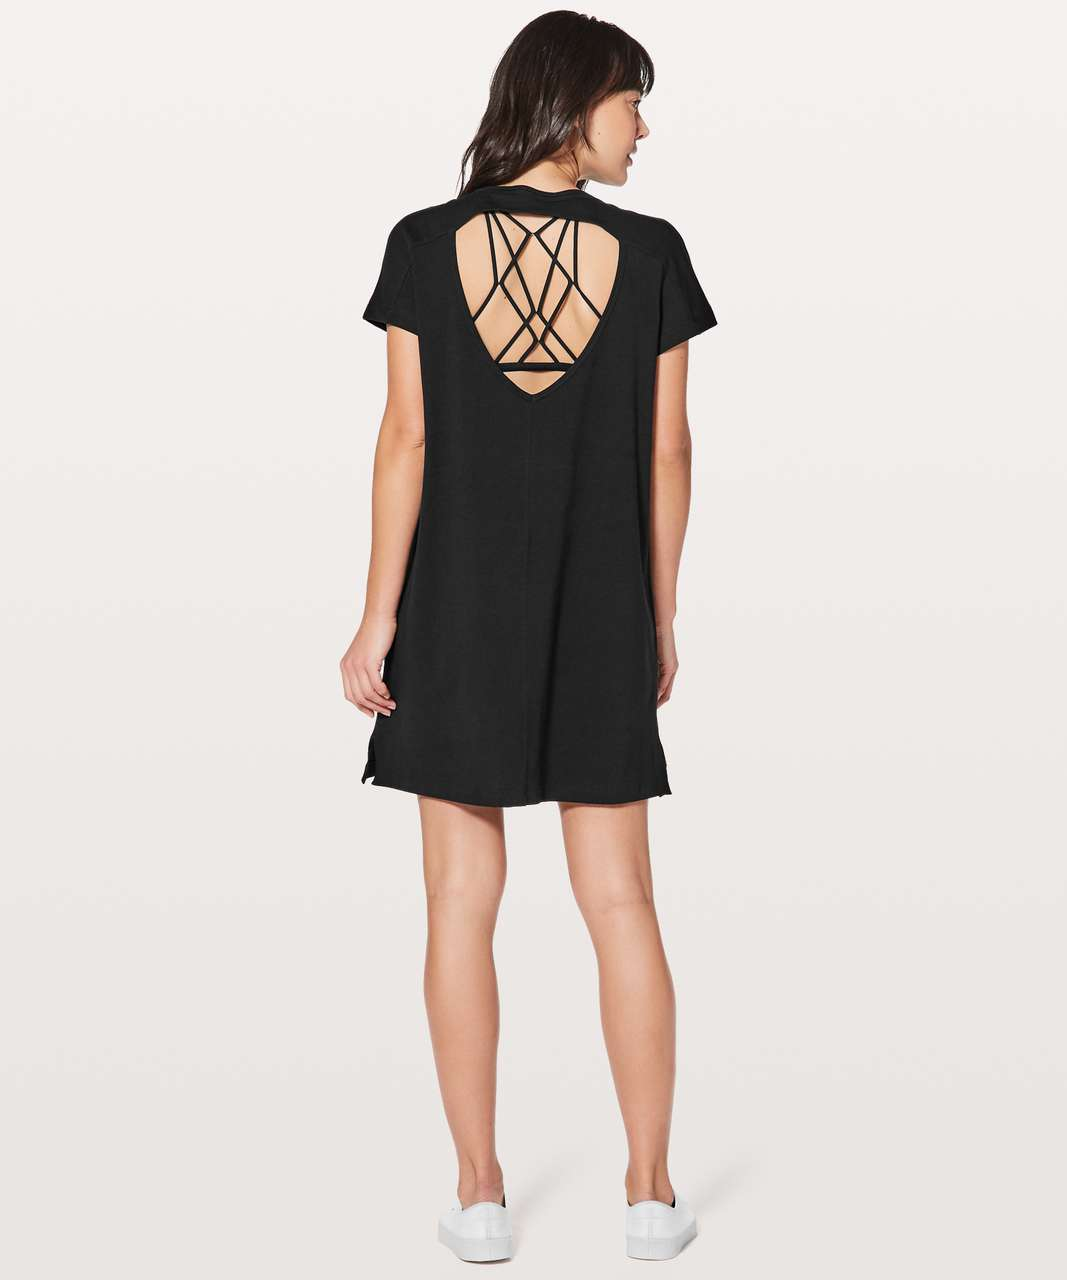 Lululemon Day Tripper Dress - Black